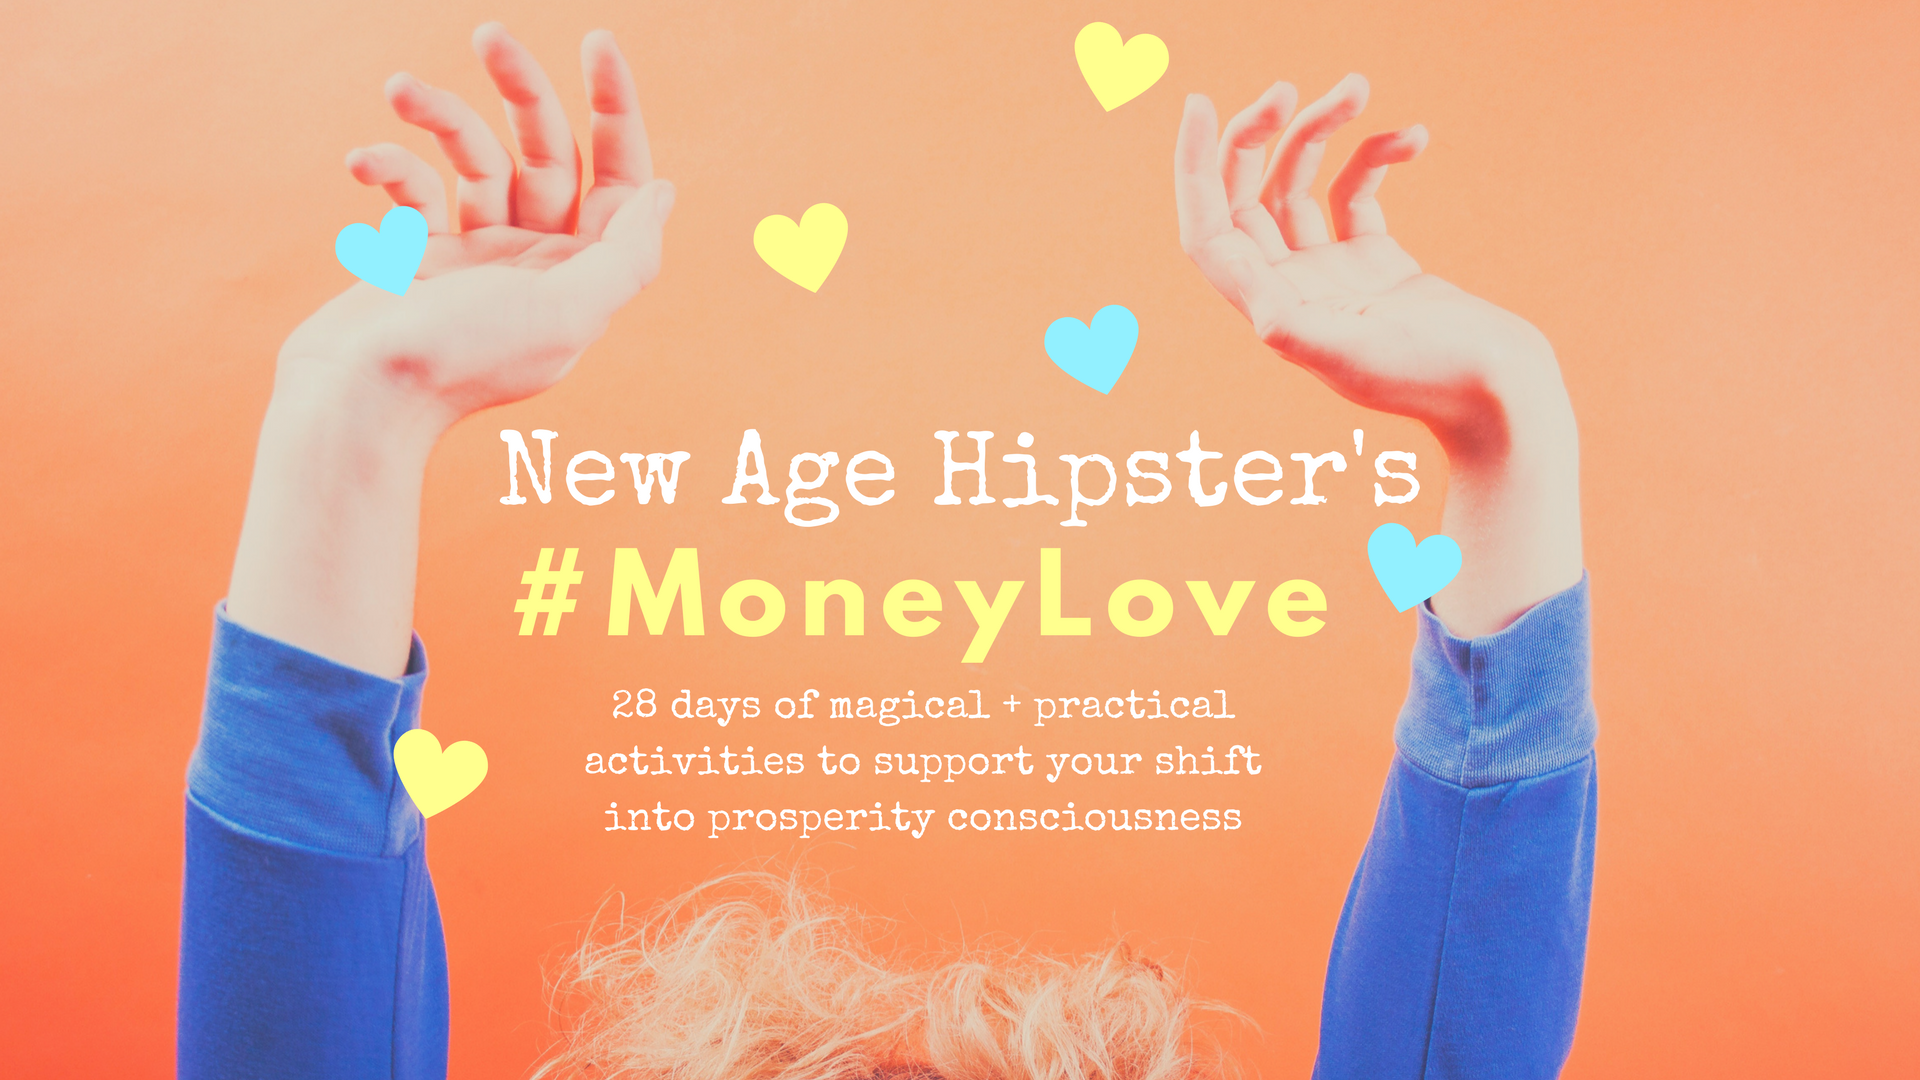 #MoneyLove New Age Hipster